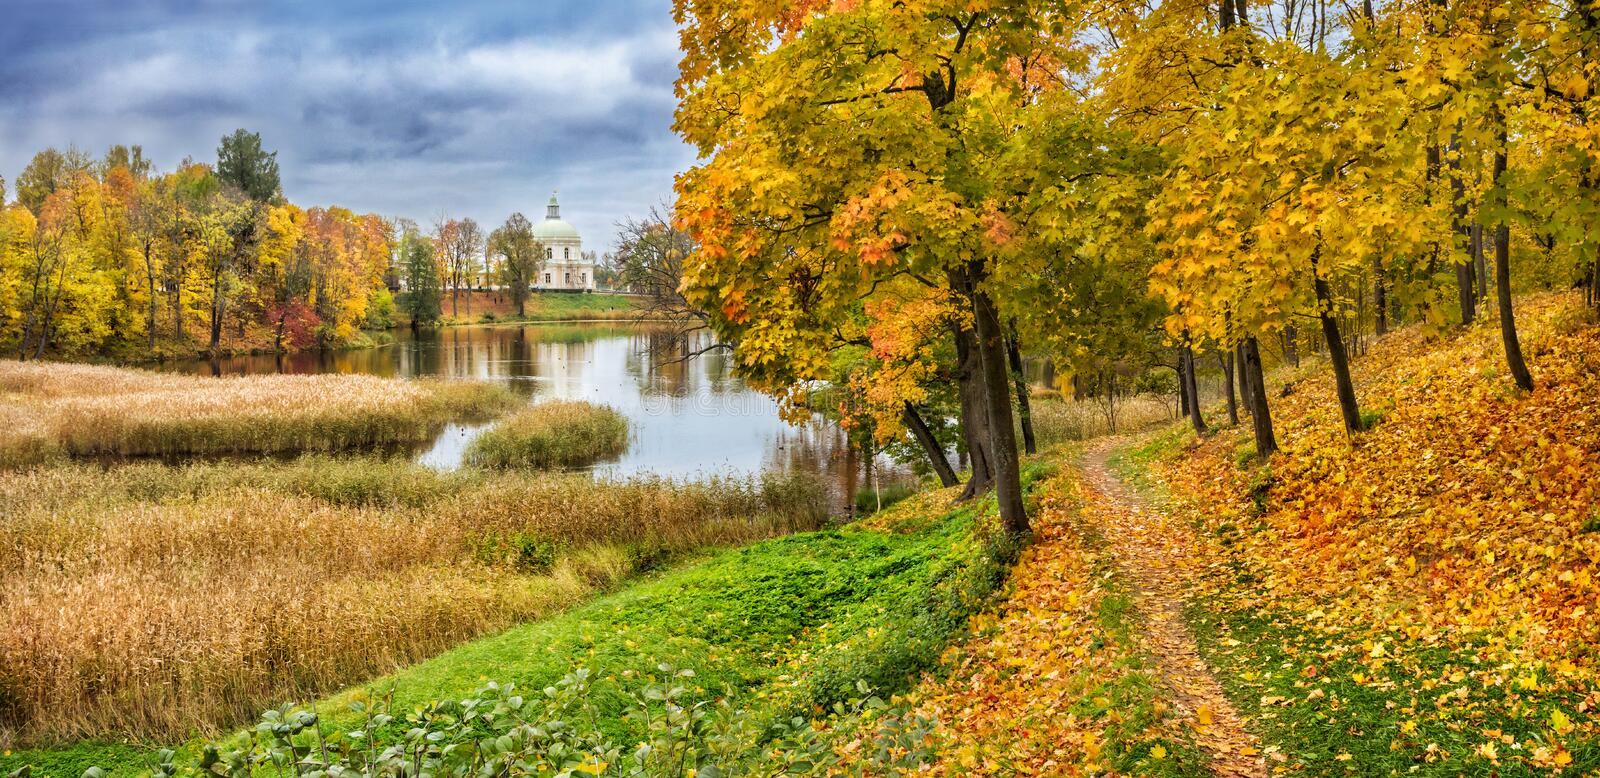 View of the palace in the city of Lomonosov royalty free stock images